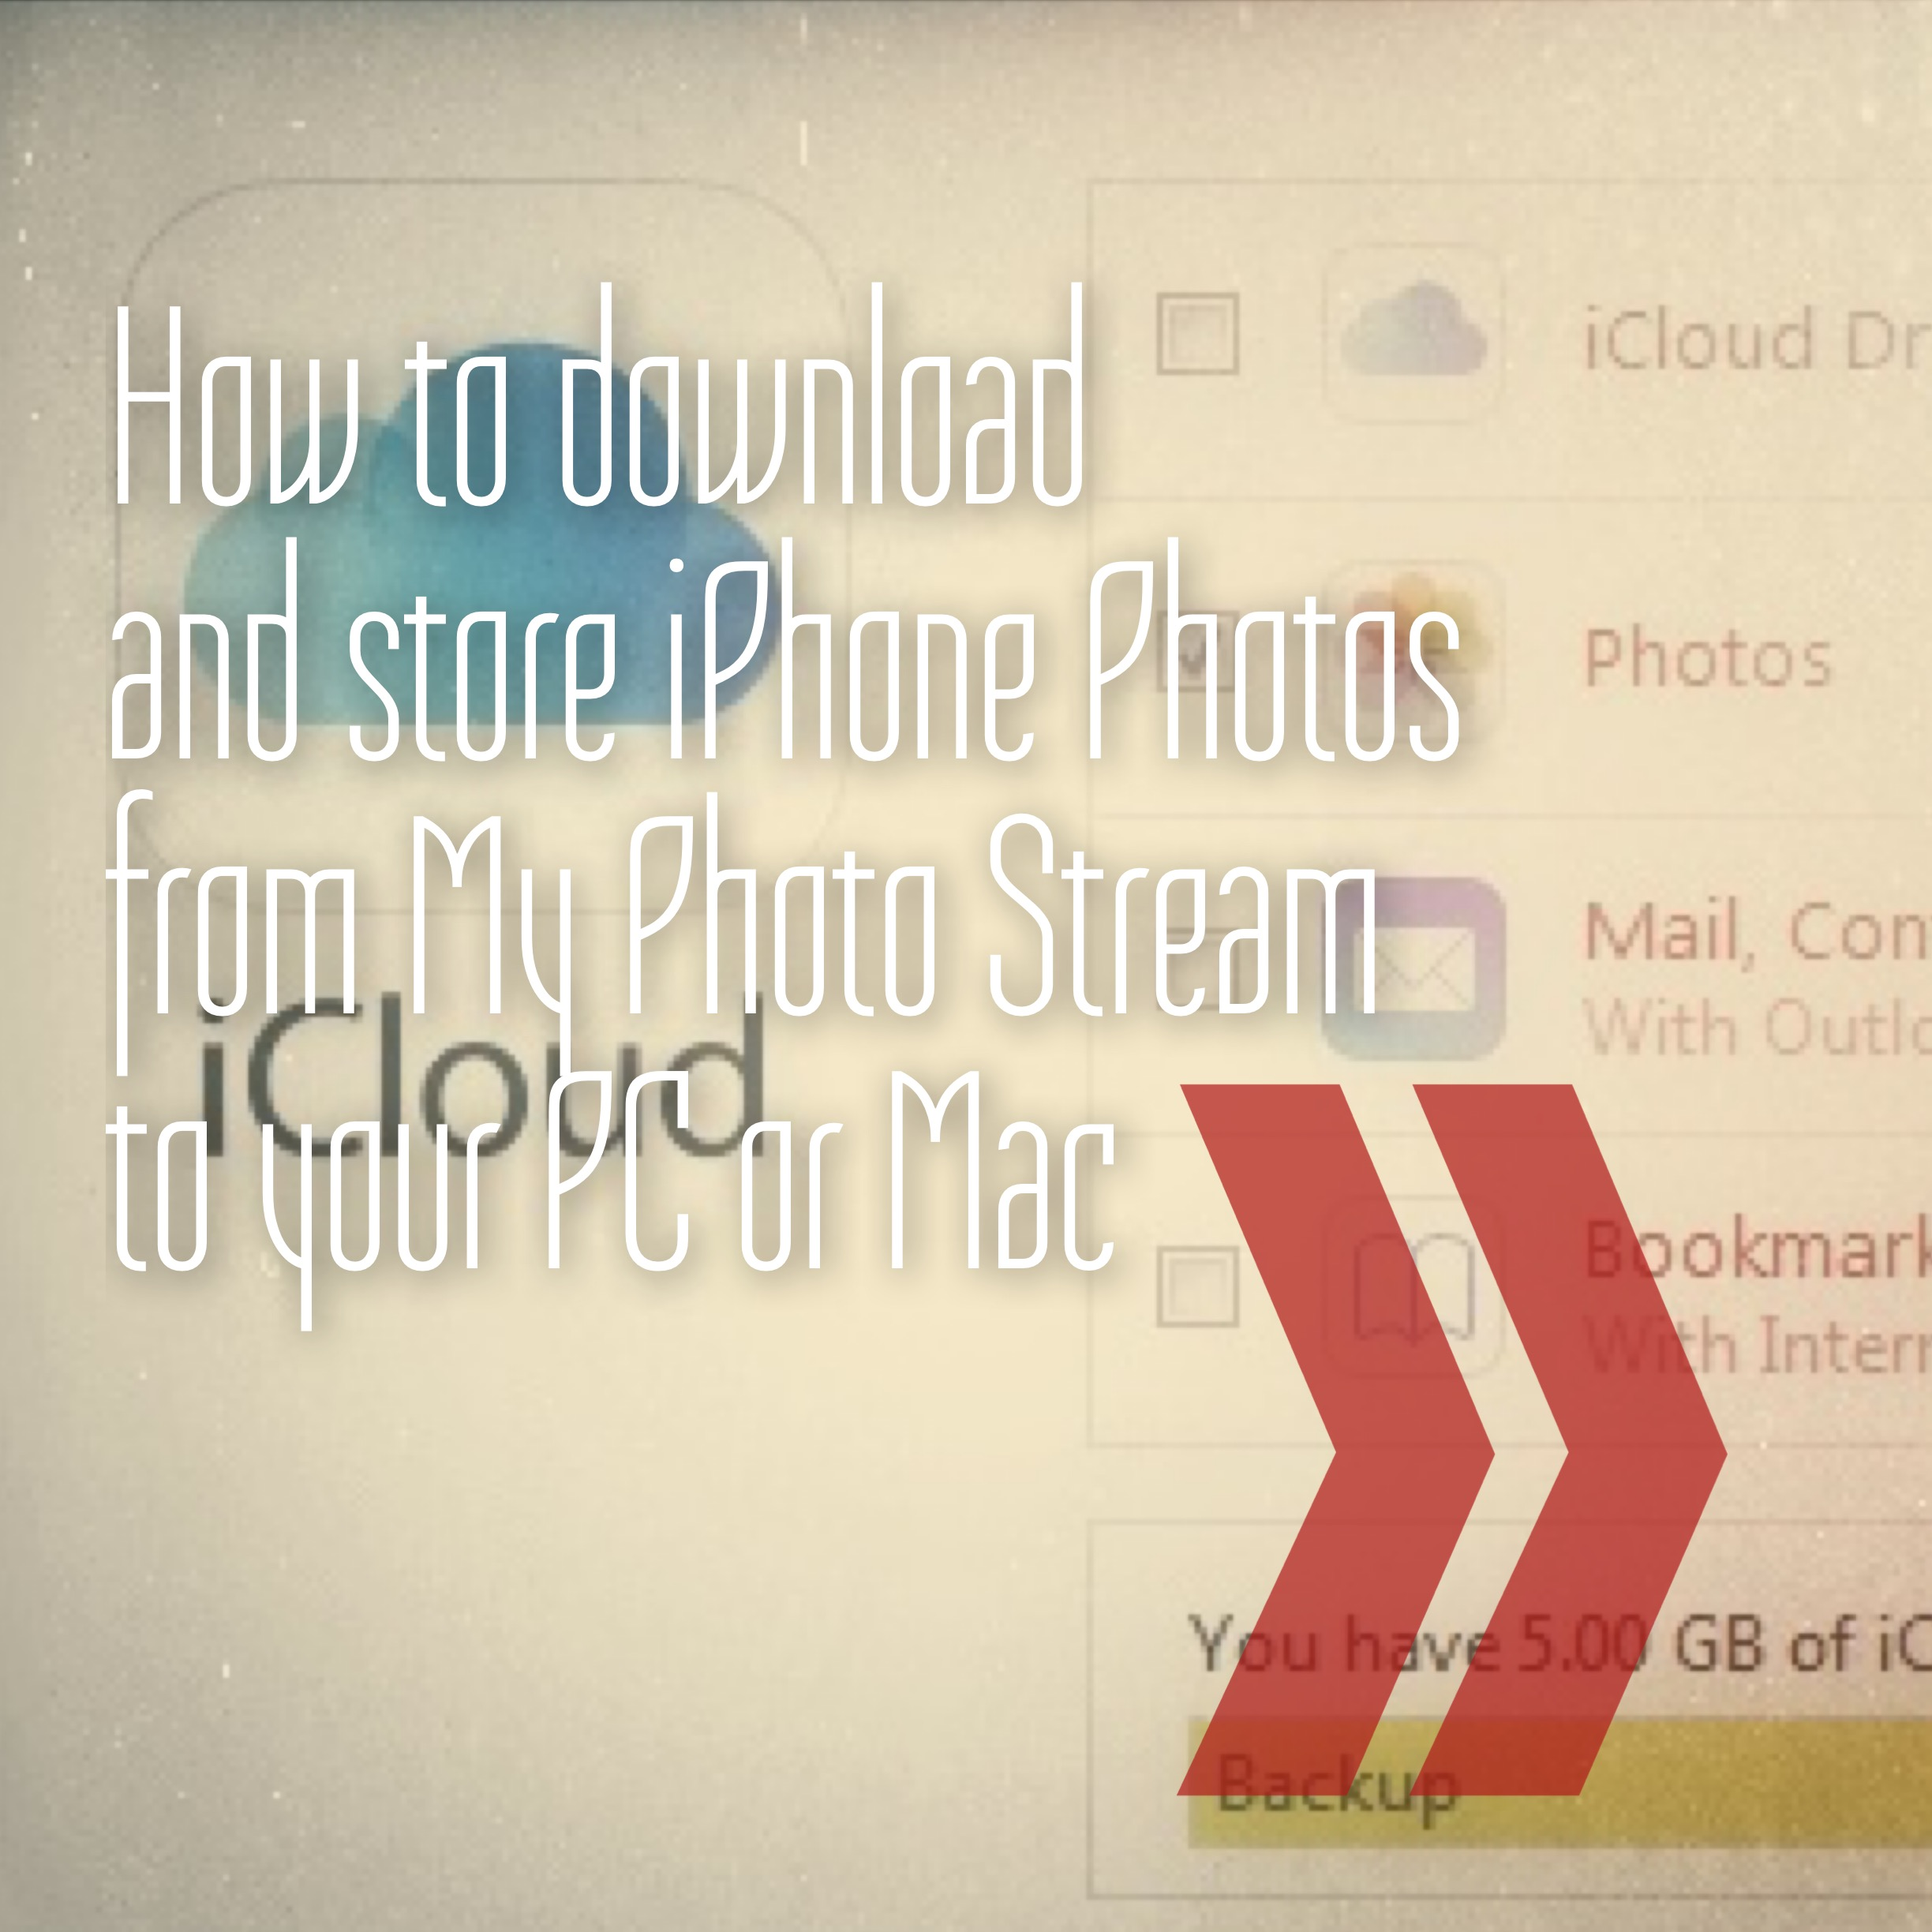 How to download and store iPhone Photos from My Photo Stream to your PC or Mac